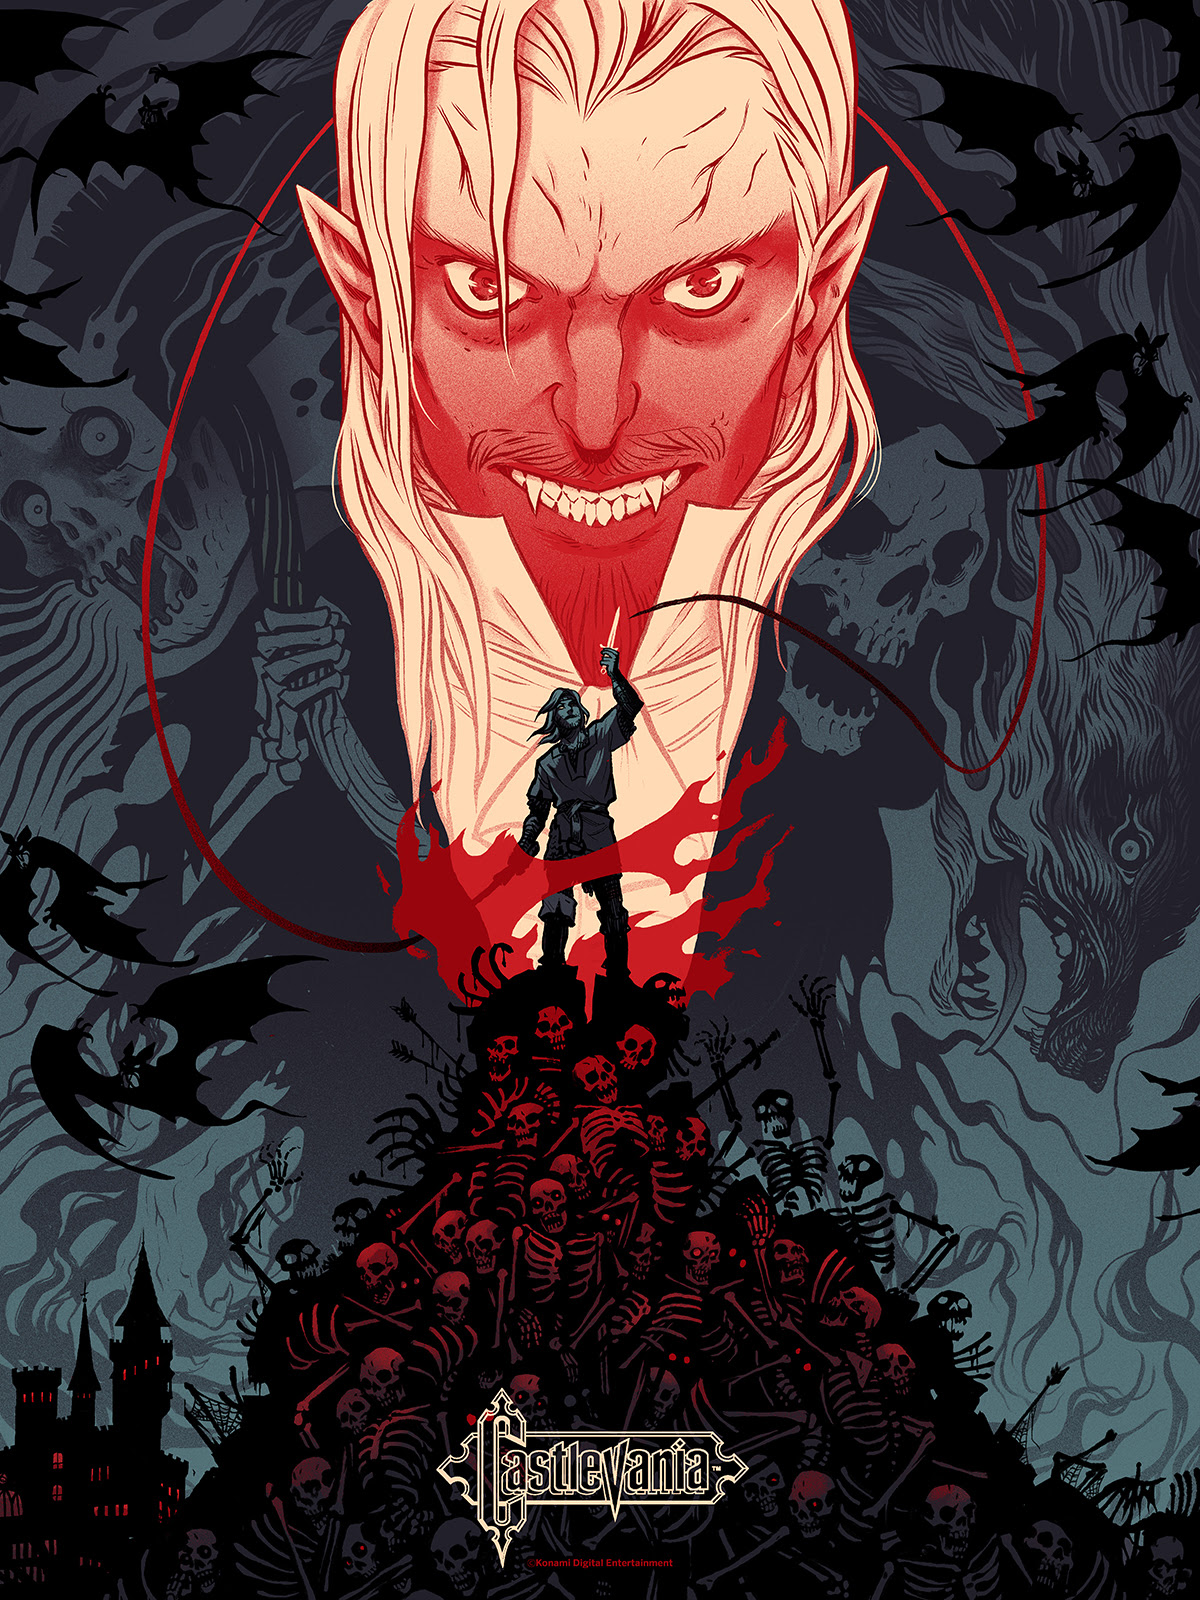 "Castlevania by Becky Cloonan. 18""x24"" screen print. Hand numbered. Edition of 200. Printed by D&L Screenprinting. $40"